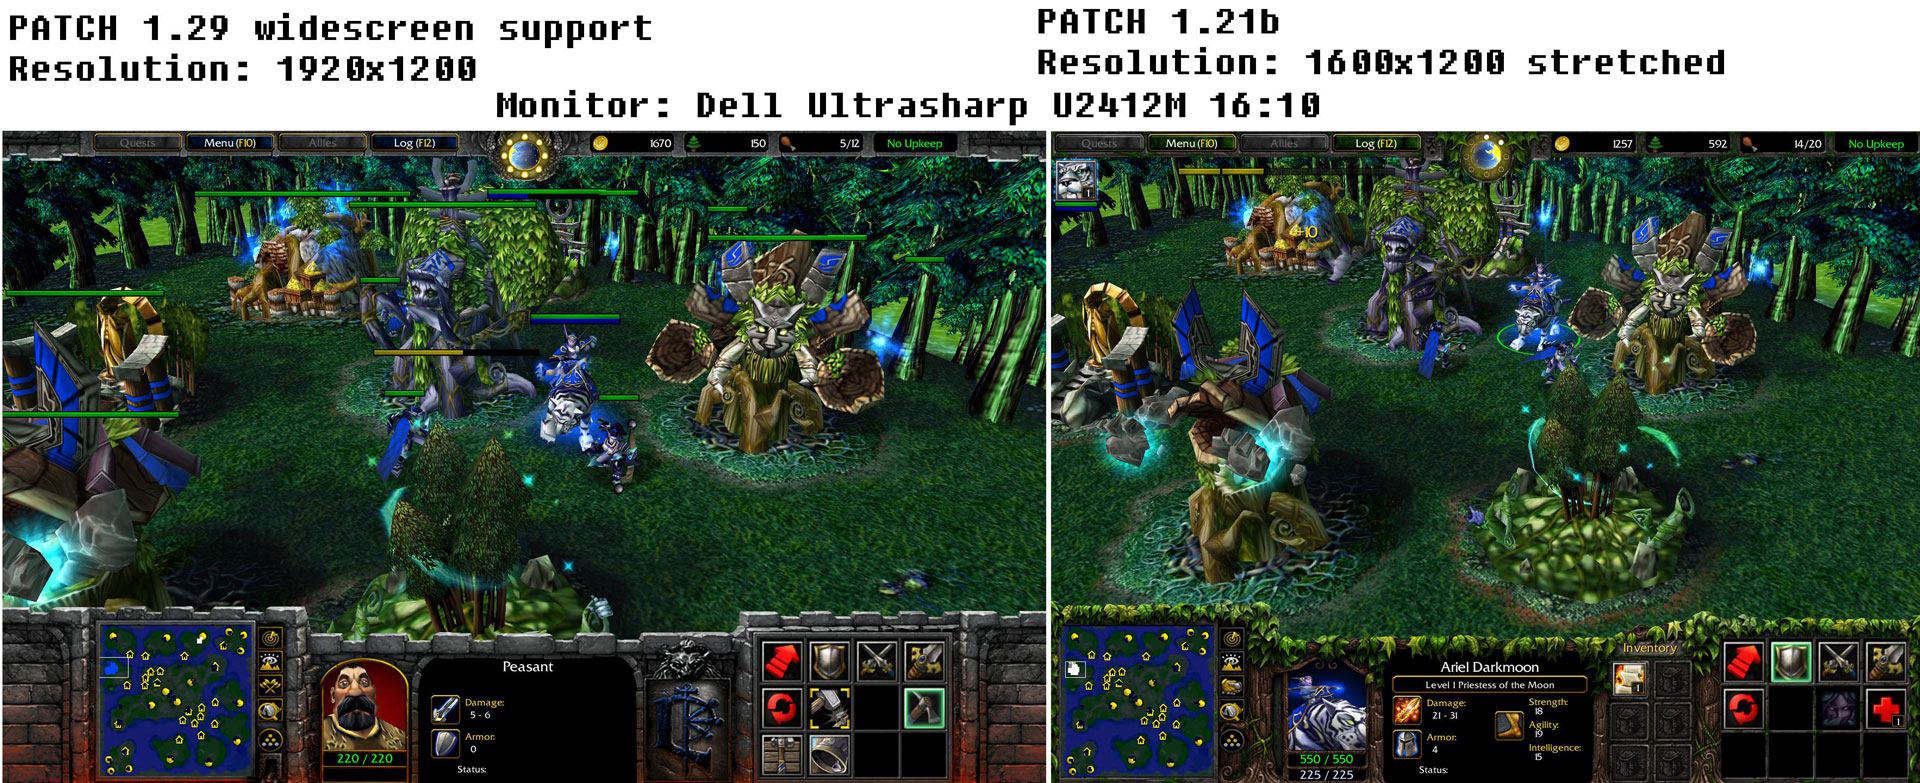 Warcraft 3 gets biggest patch in its 16 year history - PC